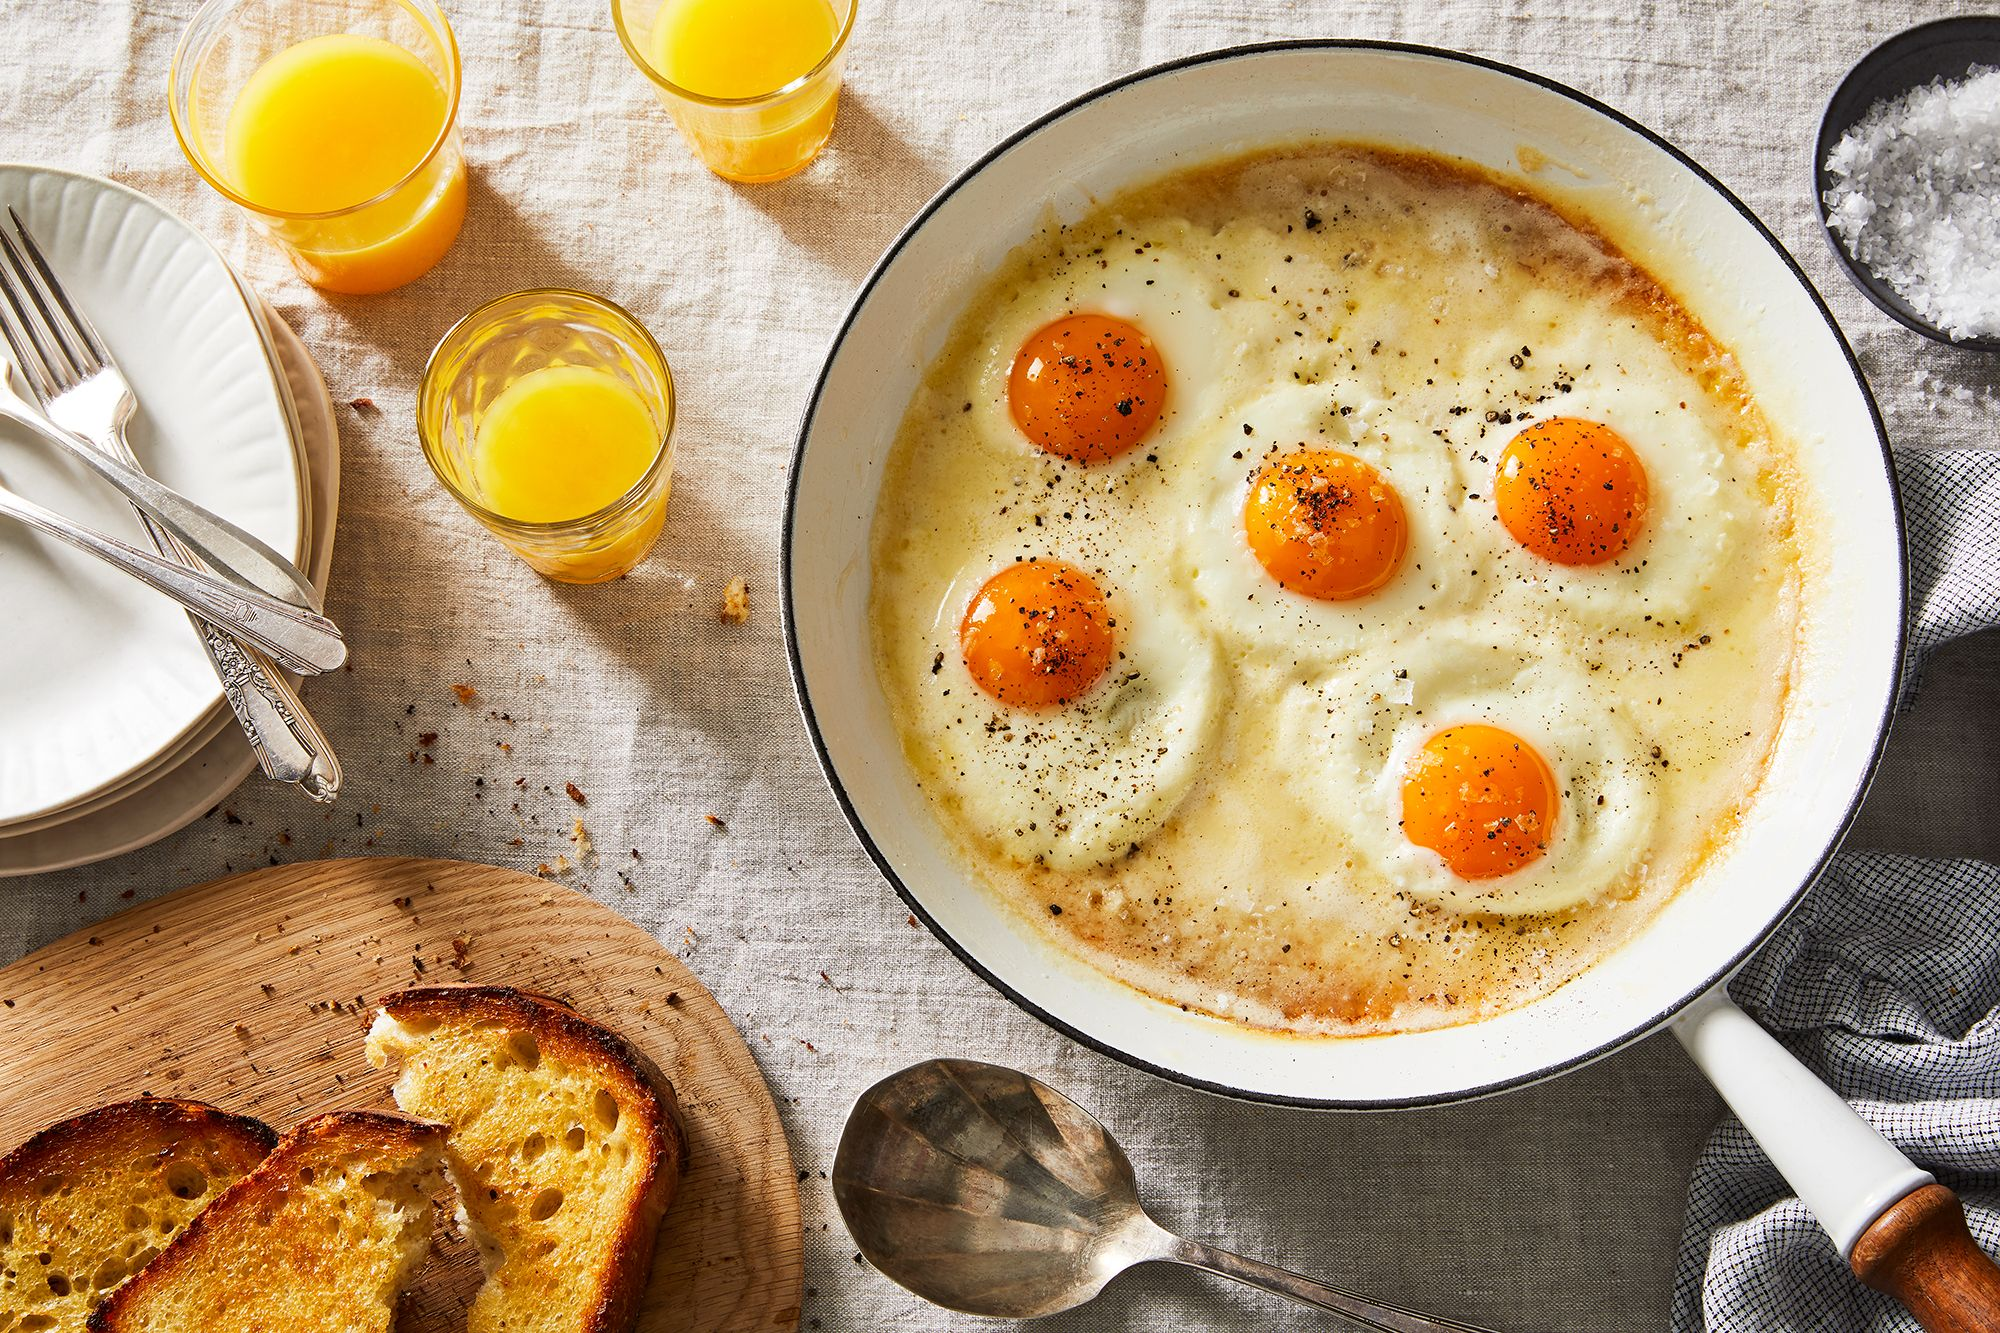 This Genius Trick Will Change How You Fry Eggs